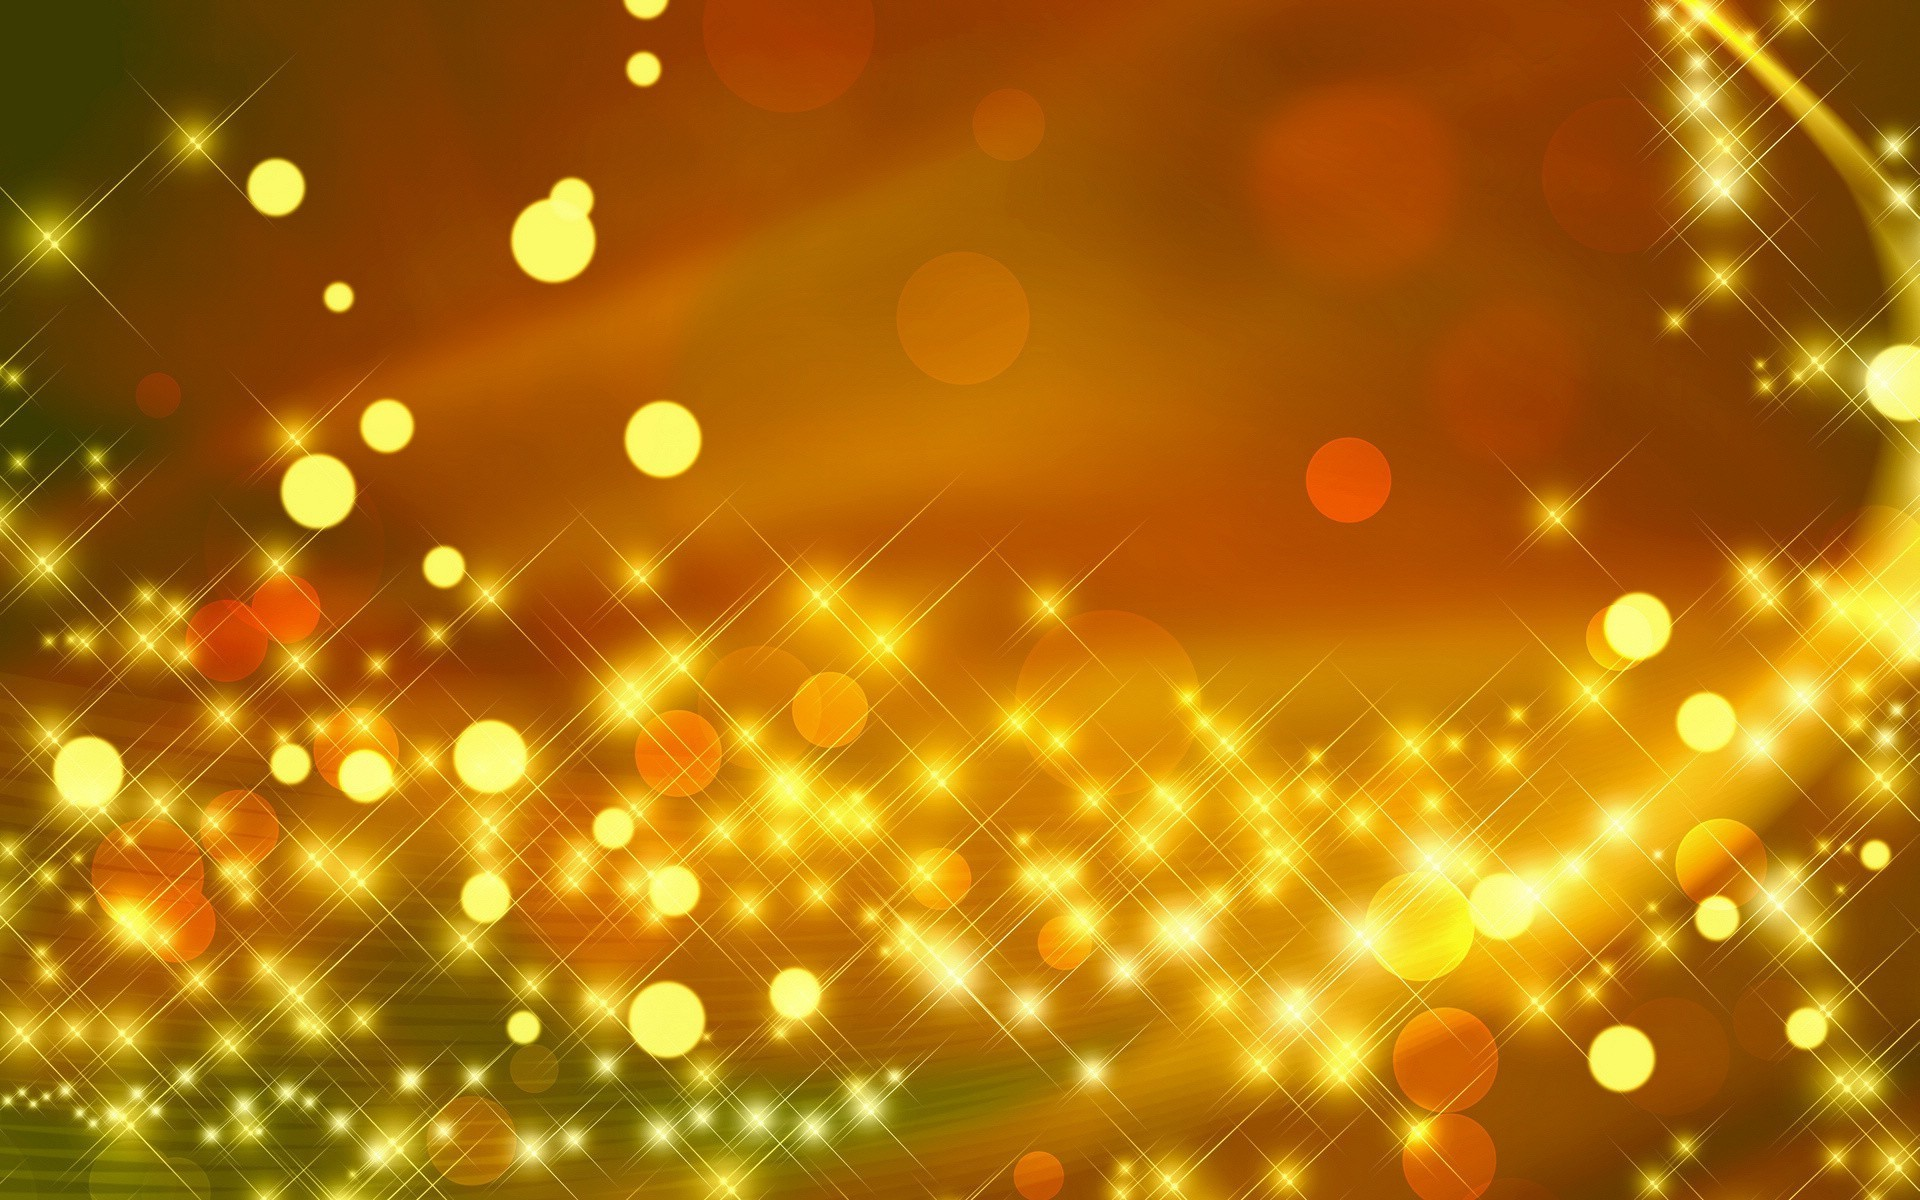 Gold Sparkly Wallpaper Desktop